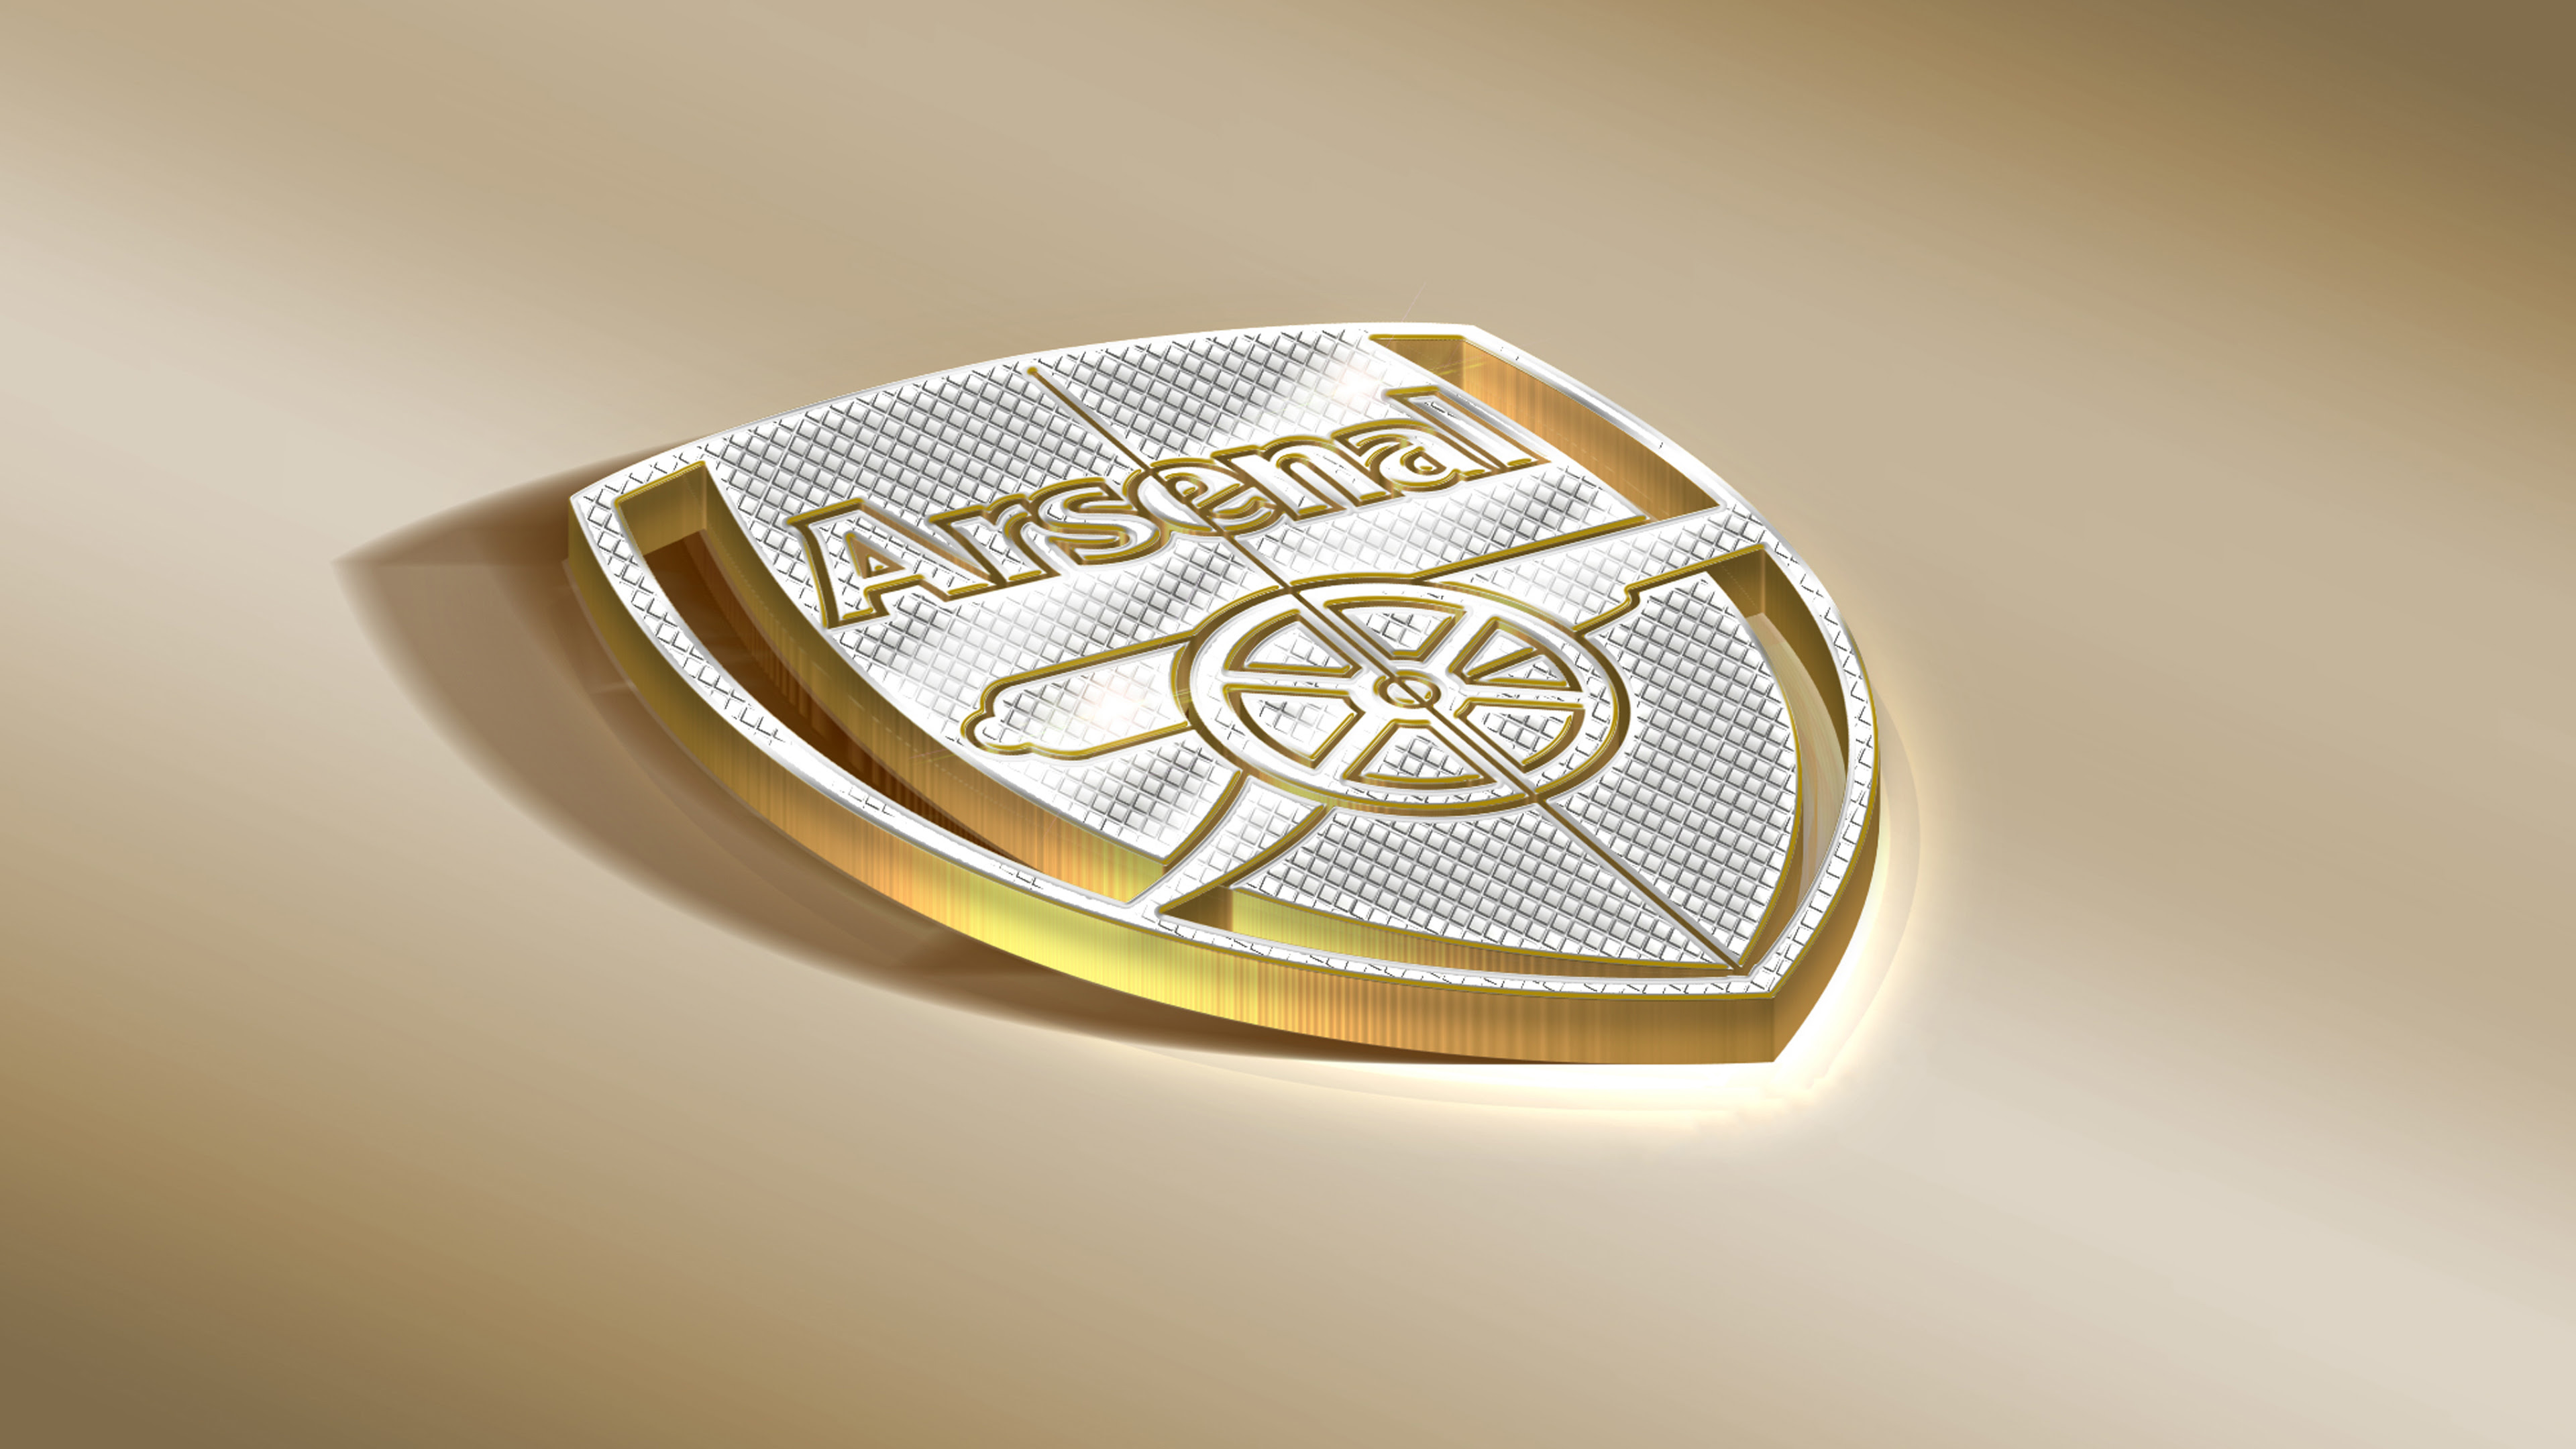 Arsenal Wallpaper For Iphone 6 Hd Football